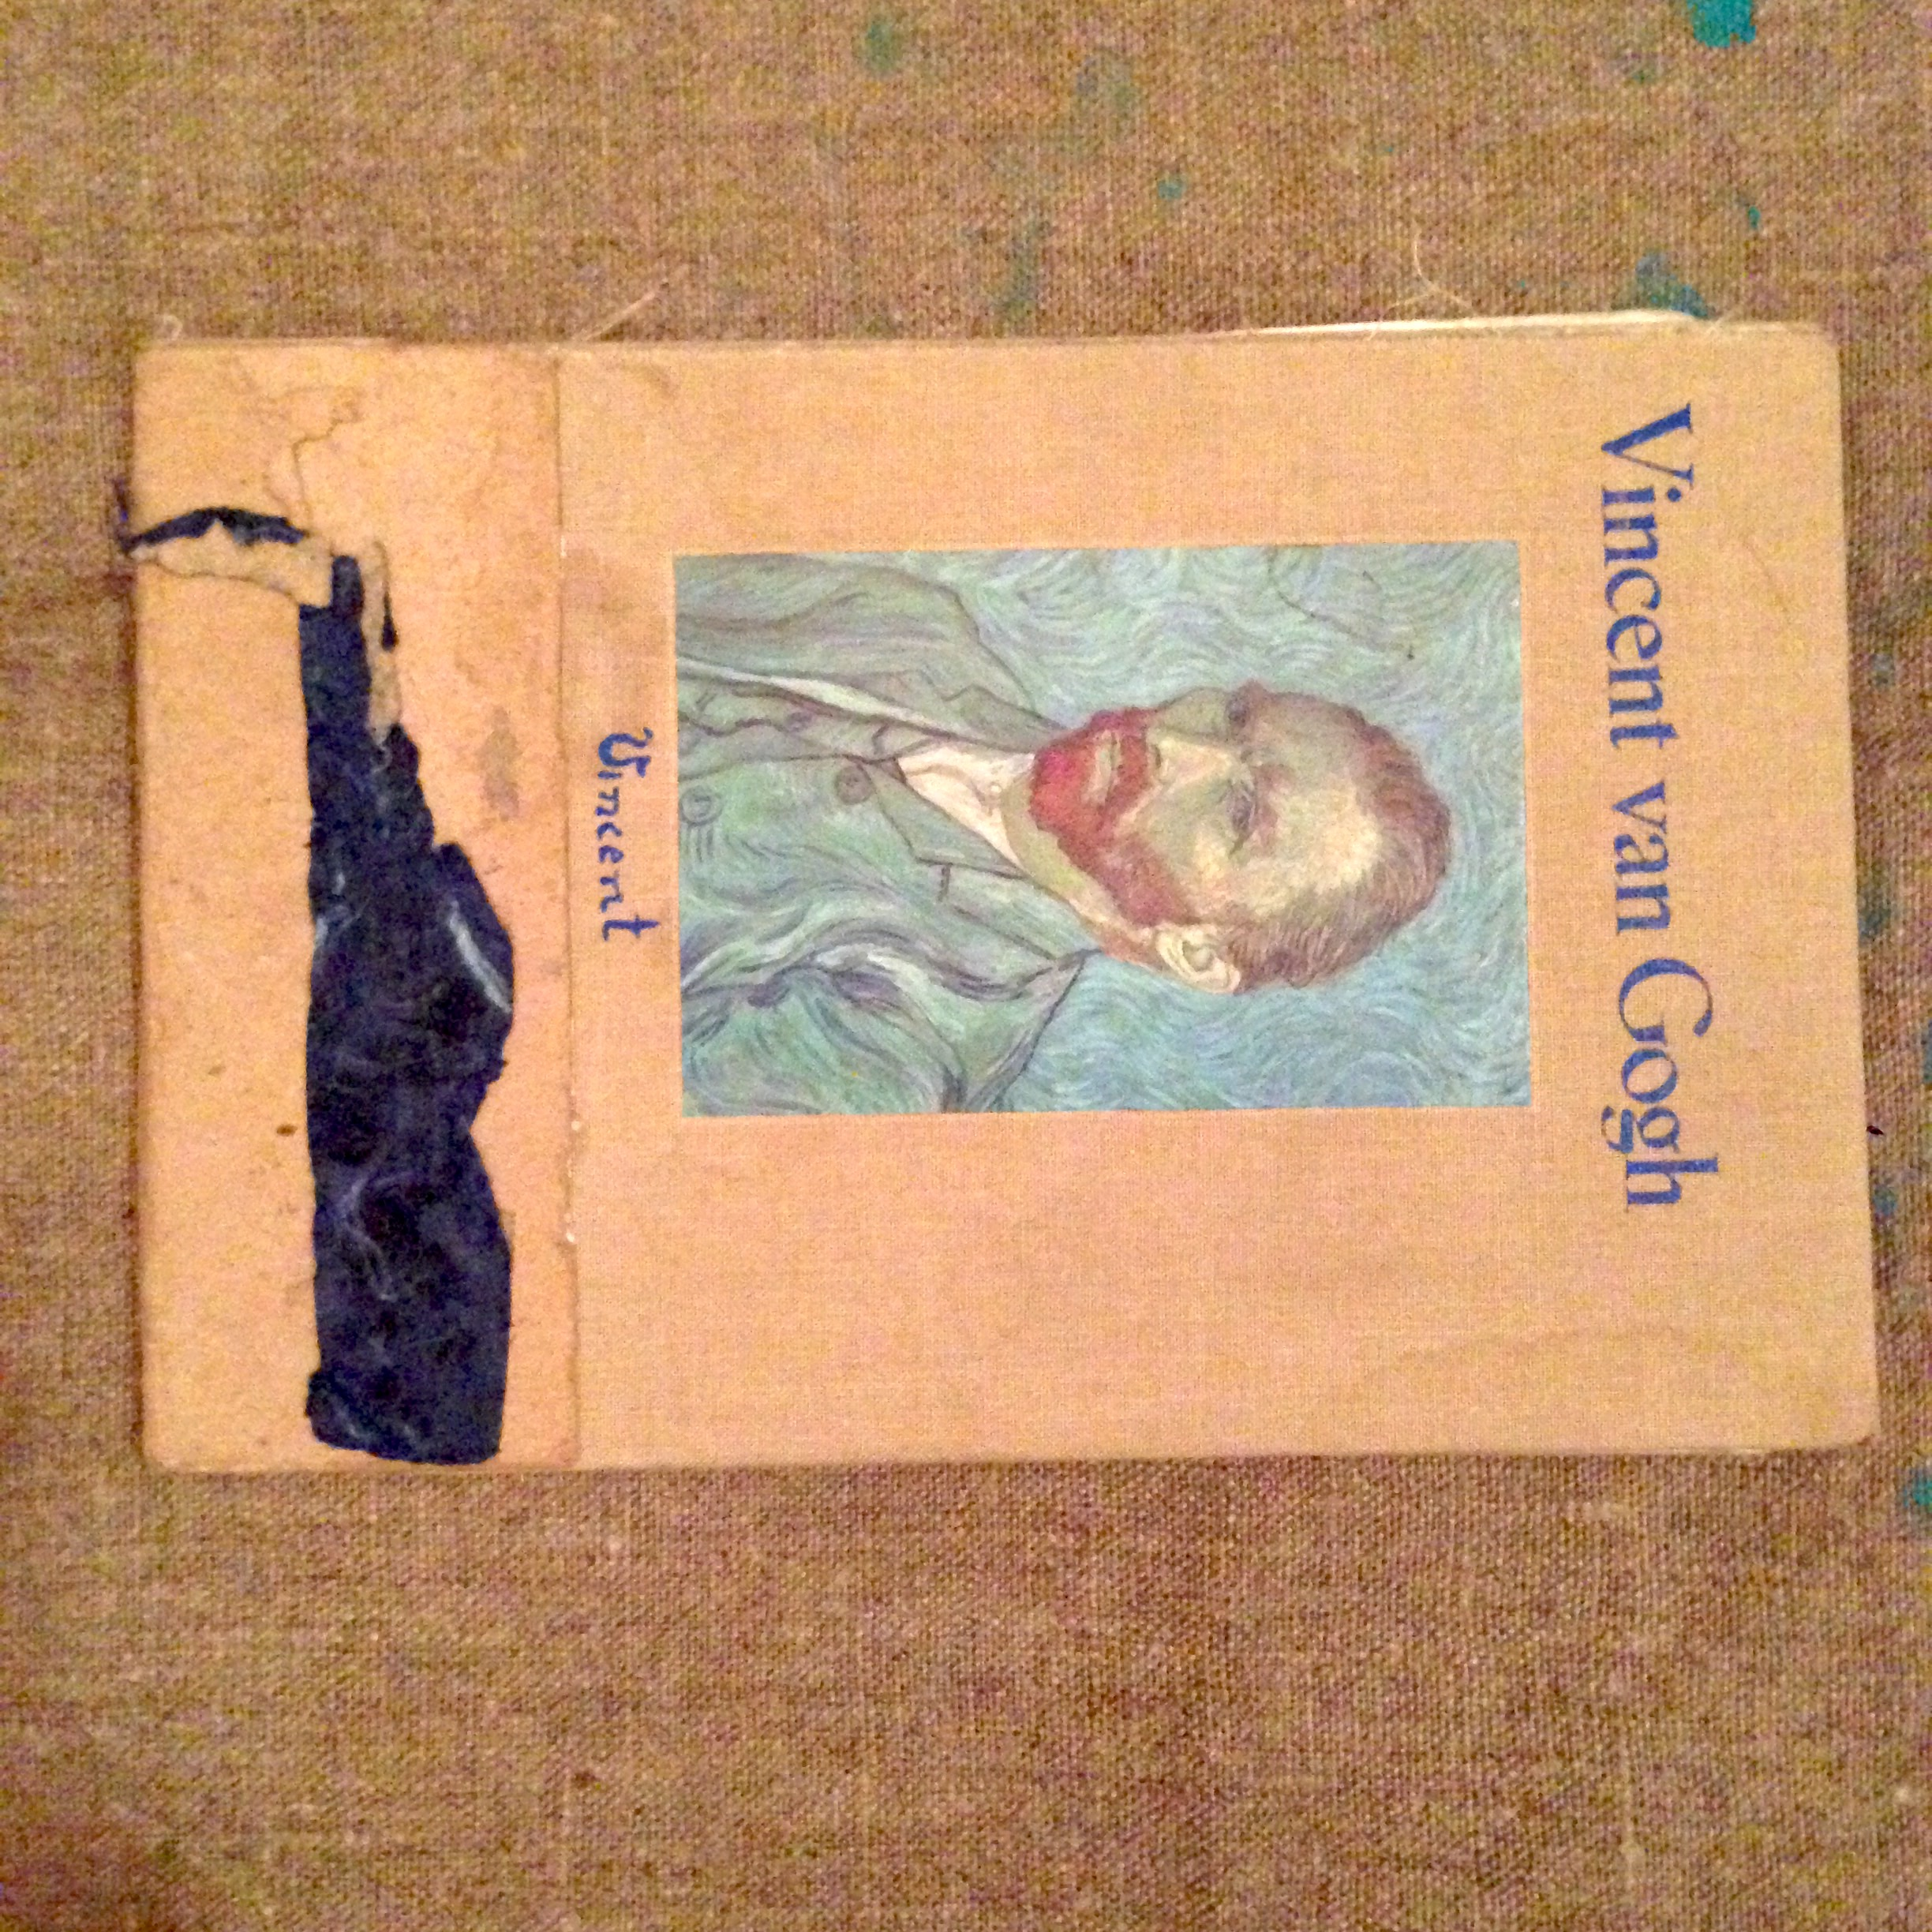 Scrapbook Assembly Van Gogh Ephemera Musings Etc Ca 2014